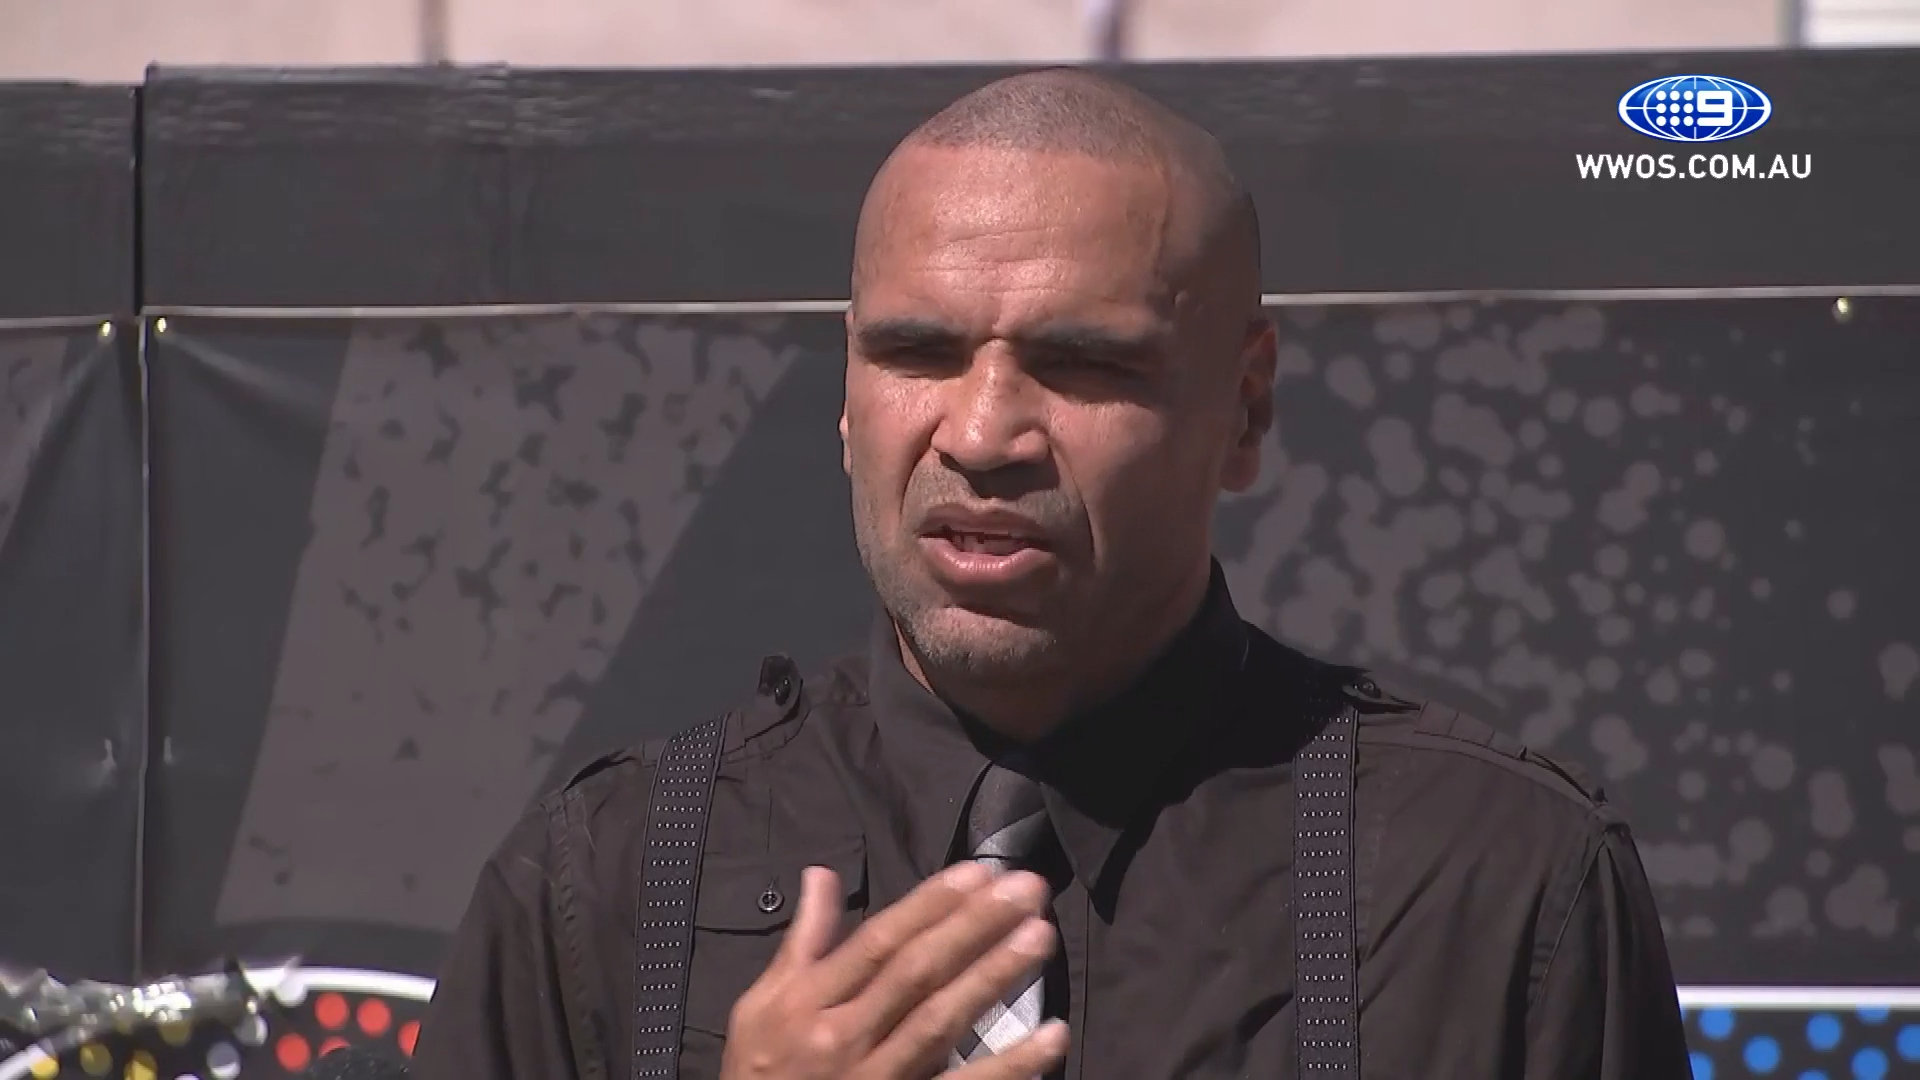 Mundine apologizes for offending people